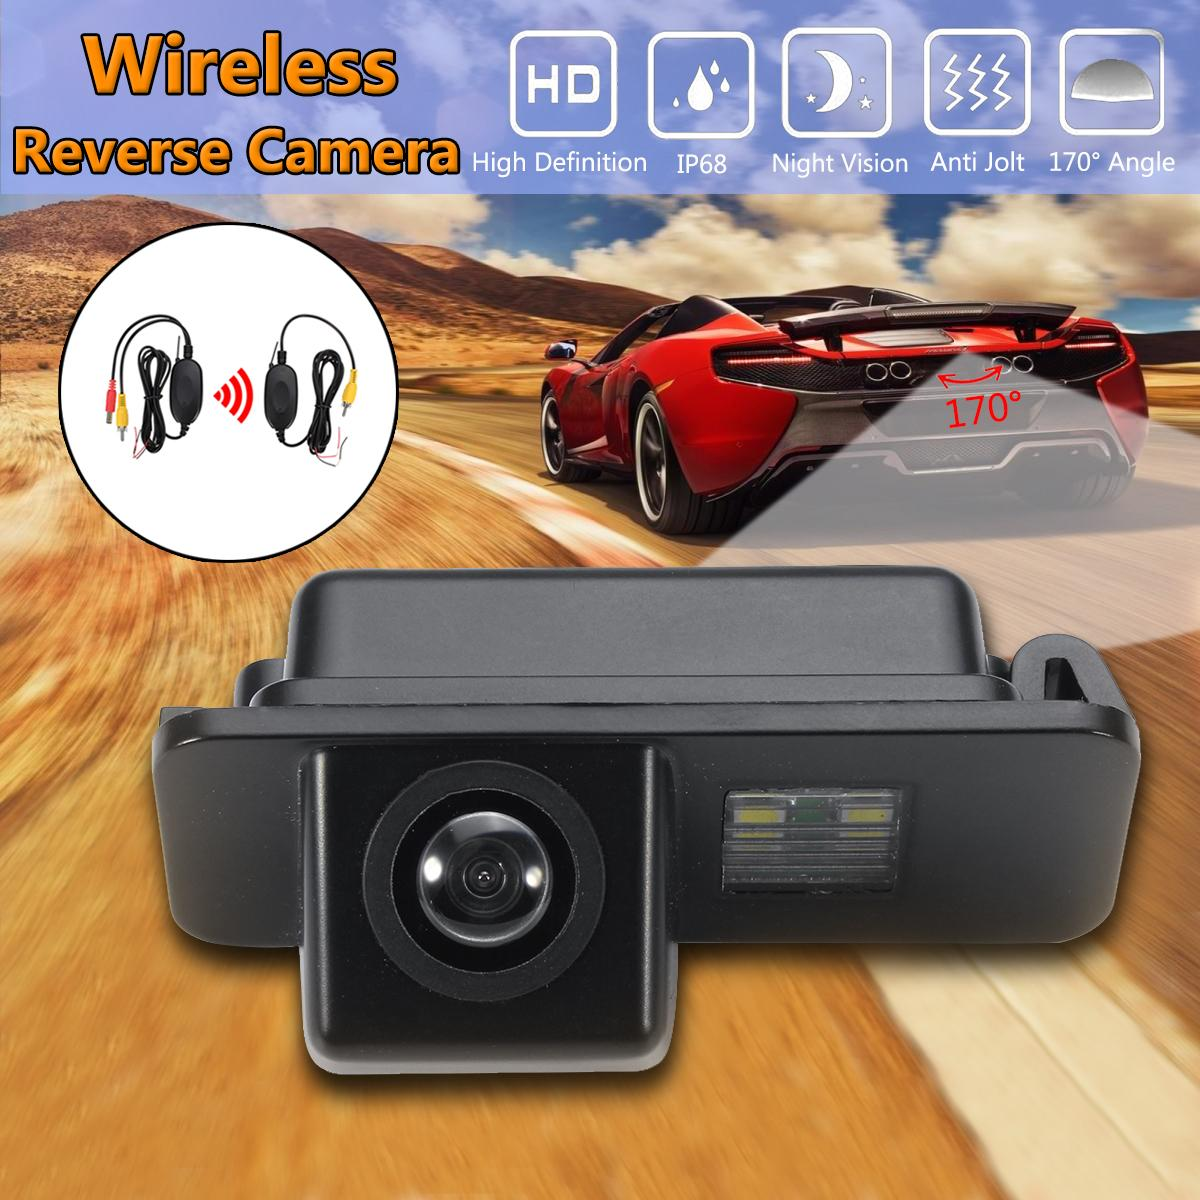 Wireless Car CCD Reverse Rear View Camera For Ford/Mondeo/Fiesta/Focus/S-Max/Kuga картридж hp131 c8765he